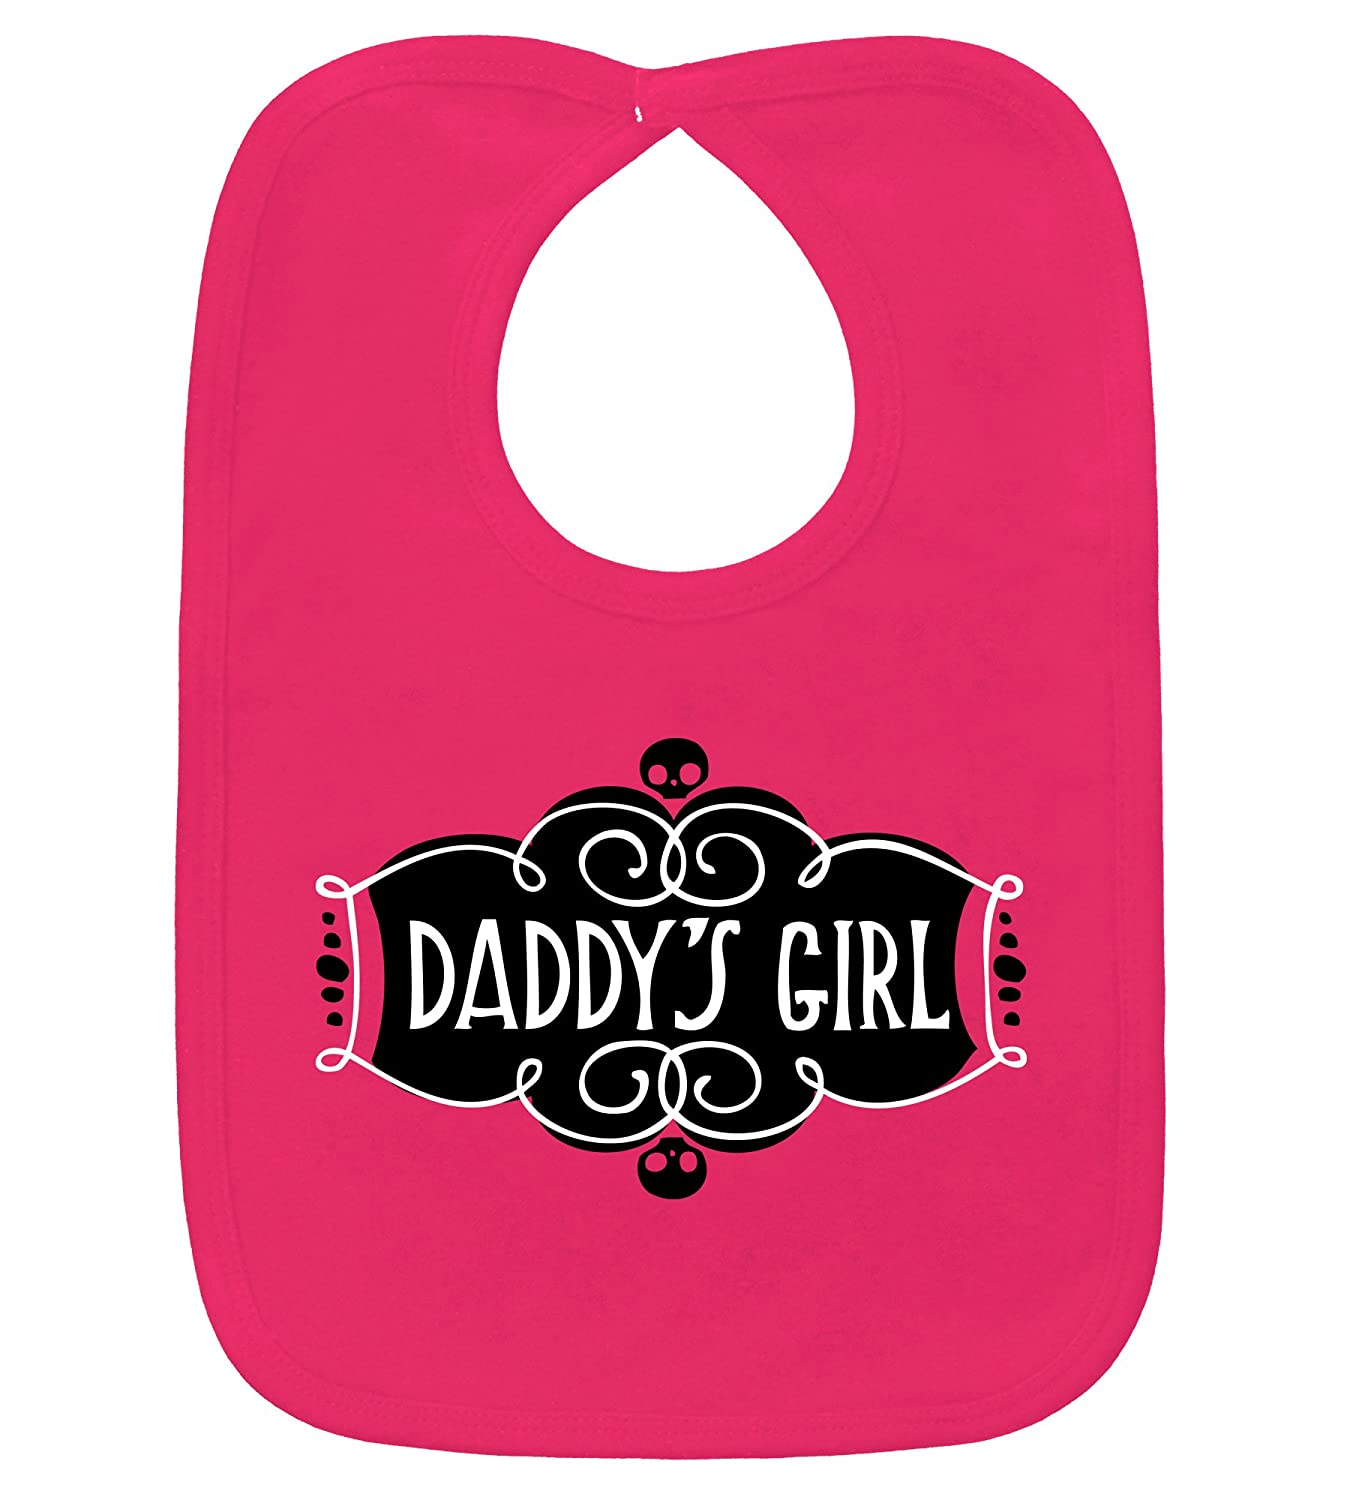 Daddy's Girl Hot Pink Bib 100% Cotton by My Baby Rocks D04-13310